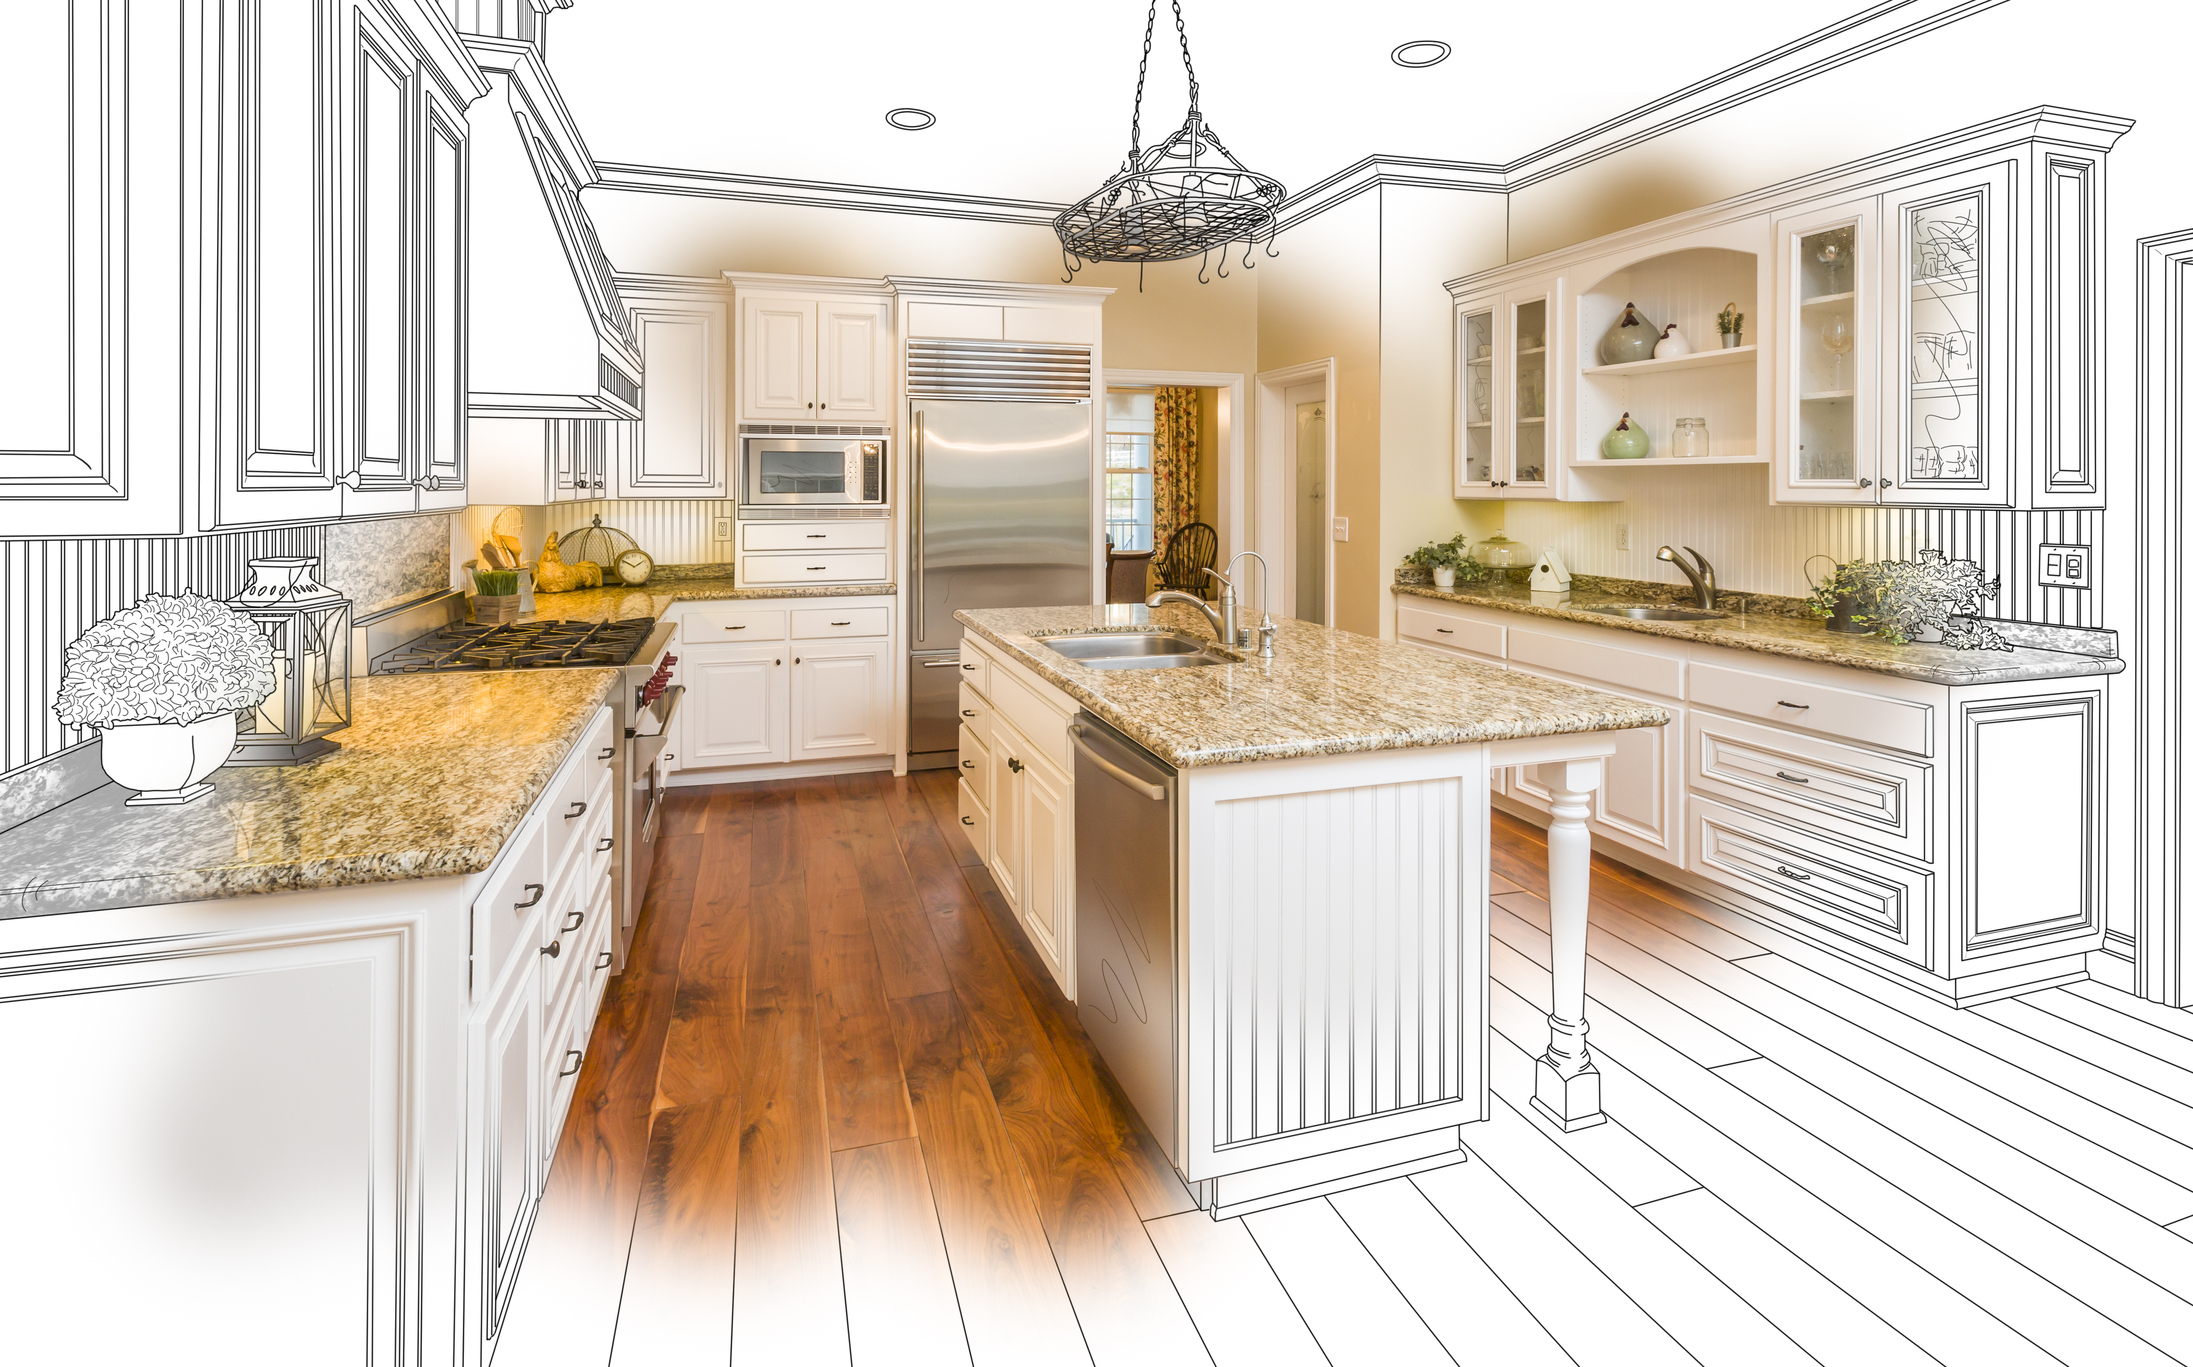 Kitchen remodel clipart clipart freeuse download Brighten Up Your Kitchen in 3 Easy Steps - GNH Lumber Co. clipart freeuse download